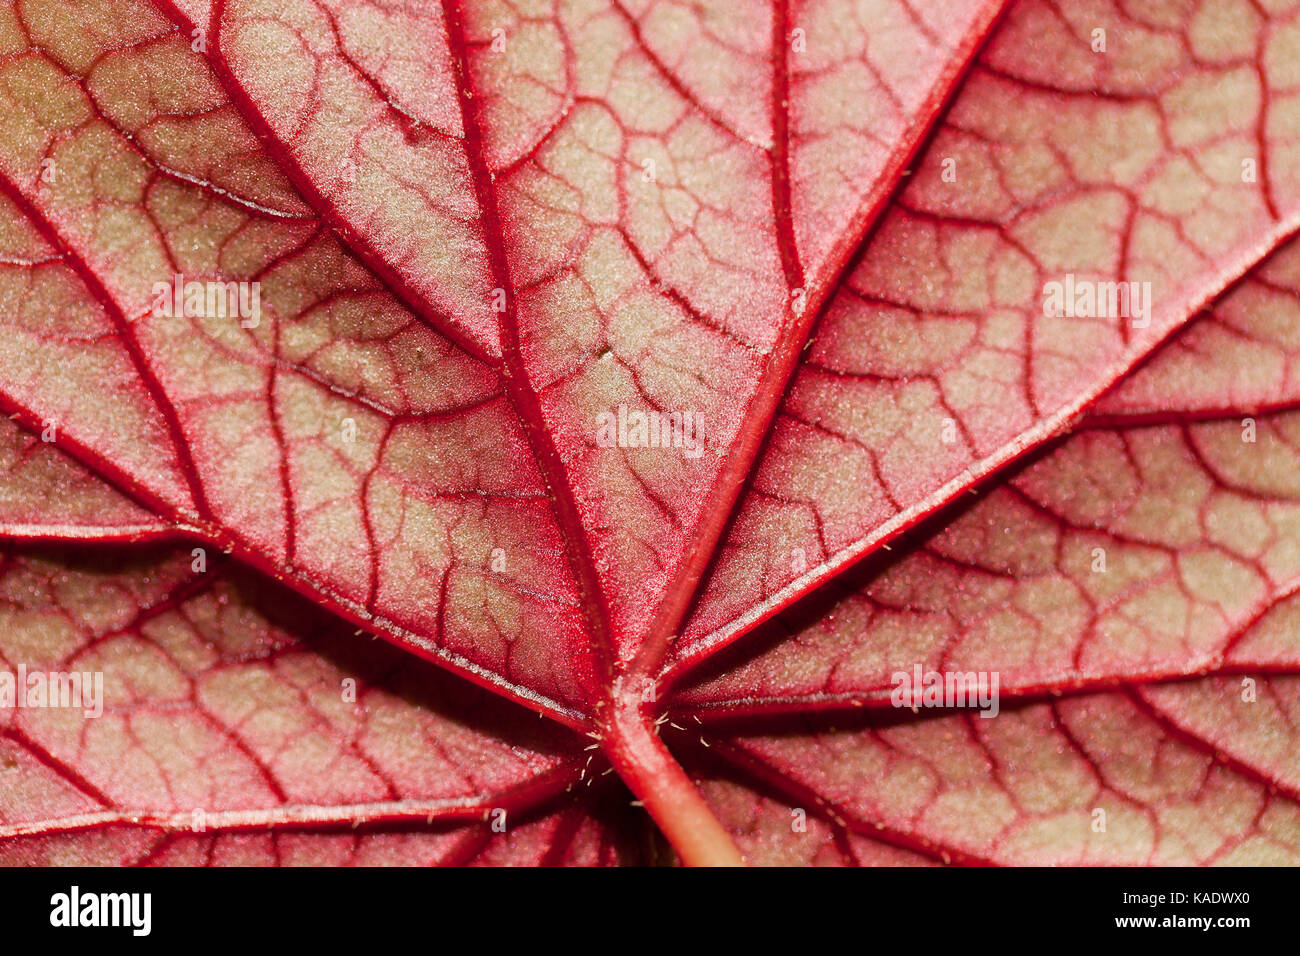 Underside of Hardy begonia leaf showing lateral veins and sublateral veins - Stock Image